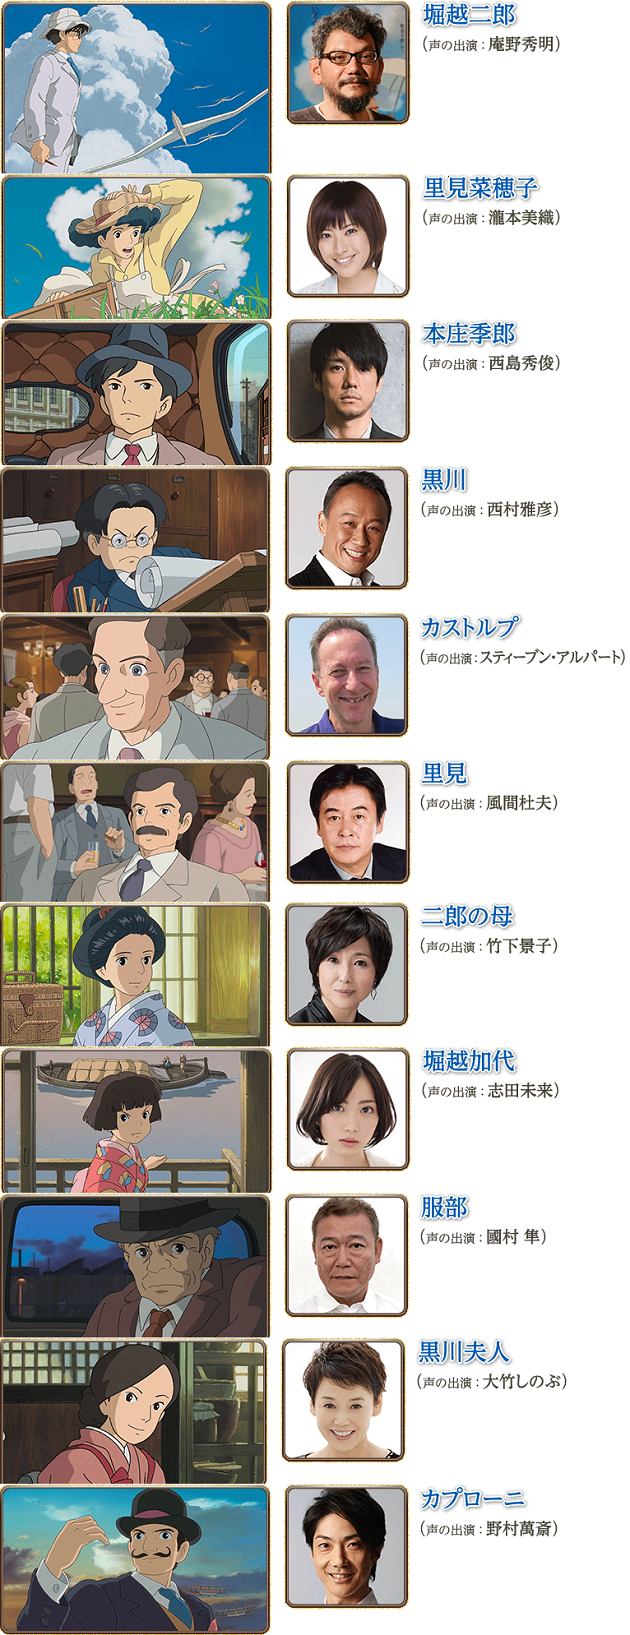 The Wind Rises Cast.png